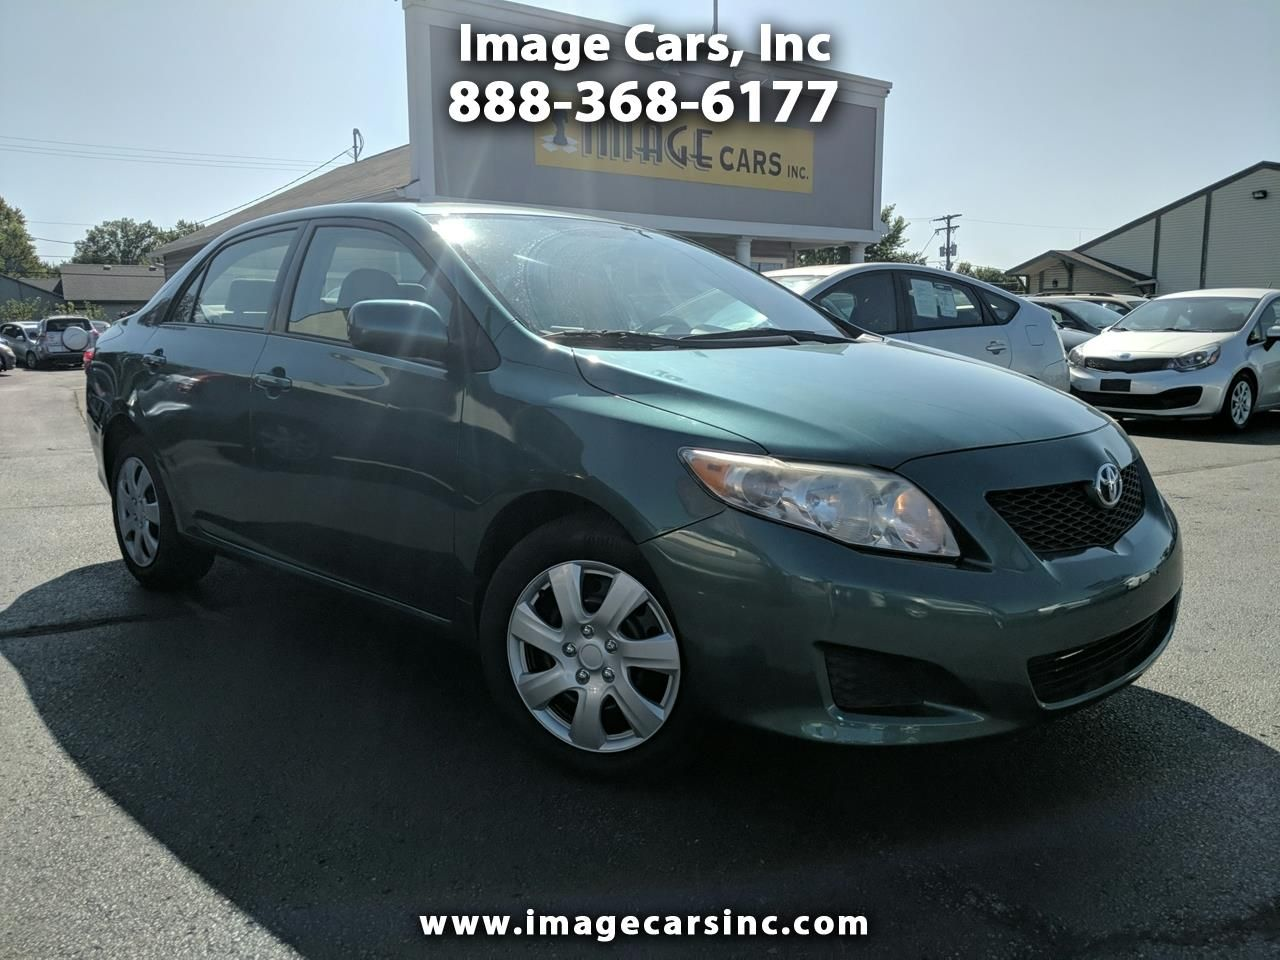 Used 2009 Toyota Corolla Xle For Sale In Fort Wayne In 46808 Image Cars Inc Toyota Corolla Used Cars Corolla